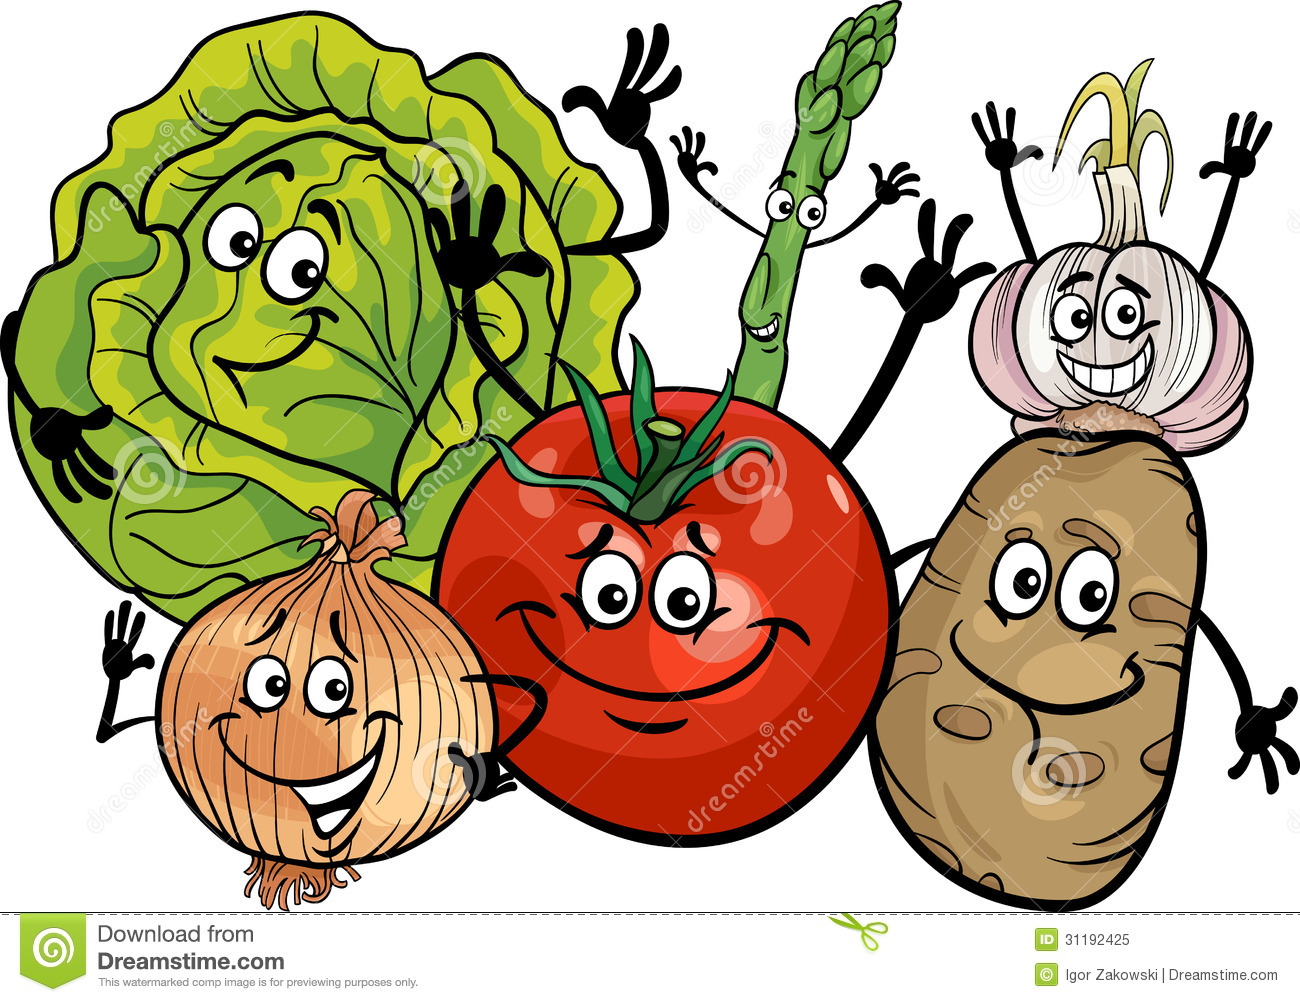 Vegetables Group Cartoon Illustration Royalty Free Stock Photo - Image ...